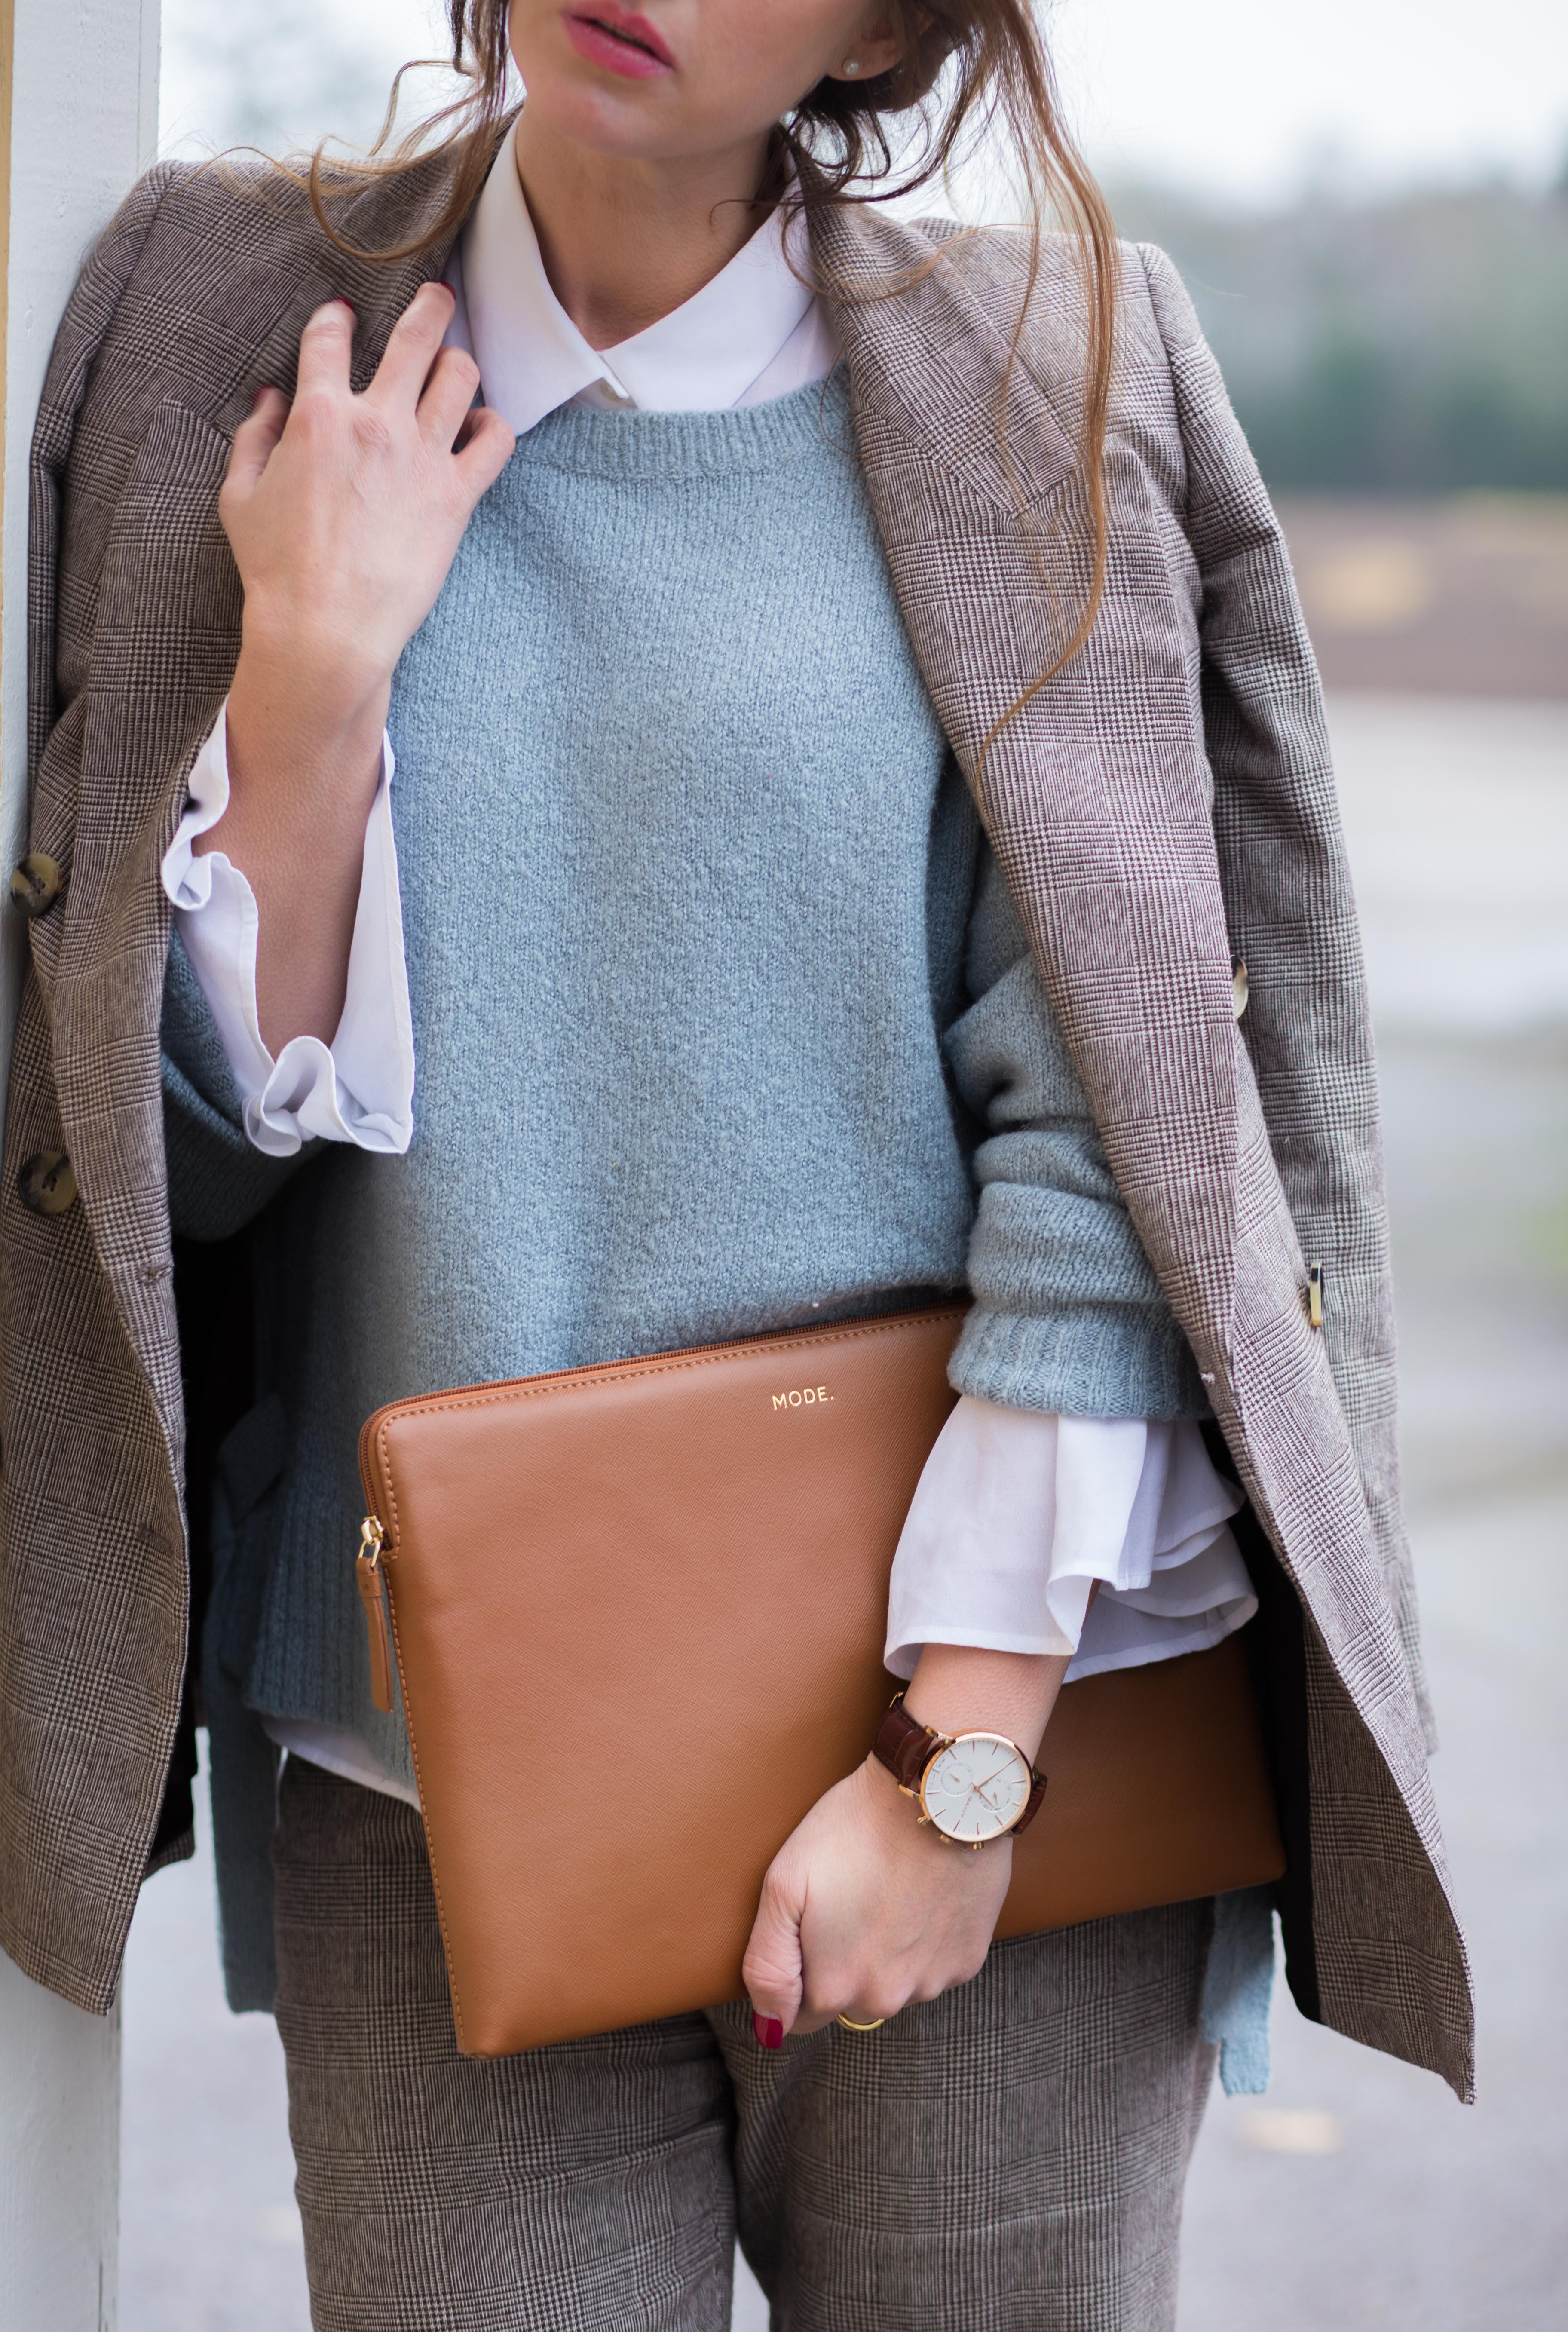 The laptop sleeve – an important accessory for a professional impresssion